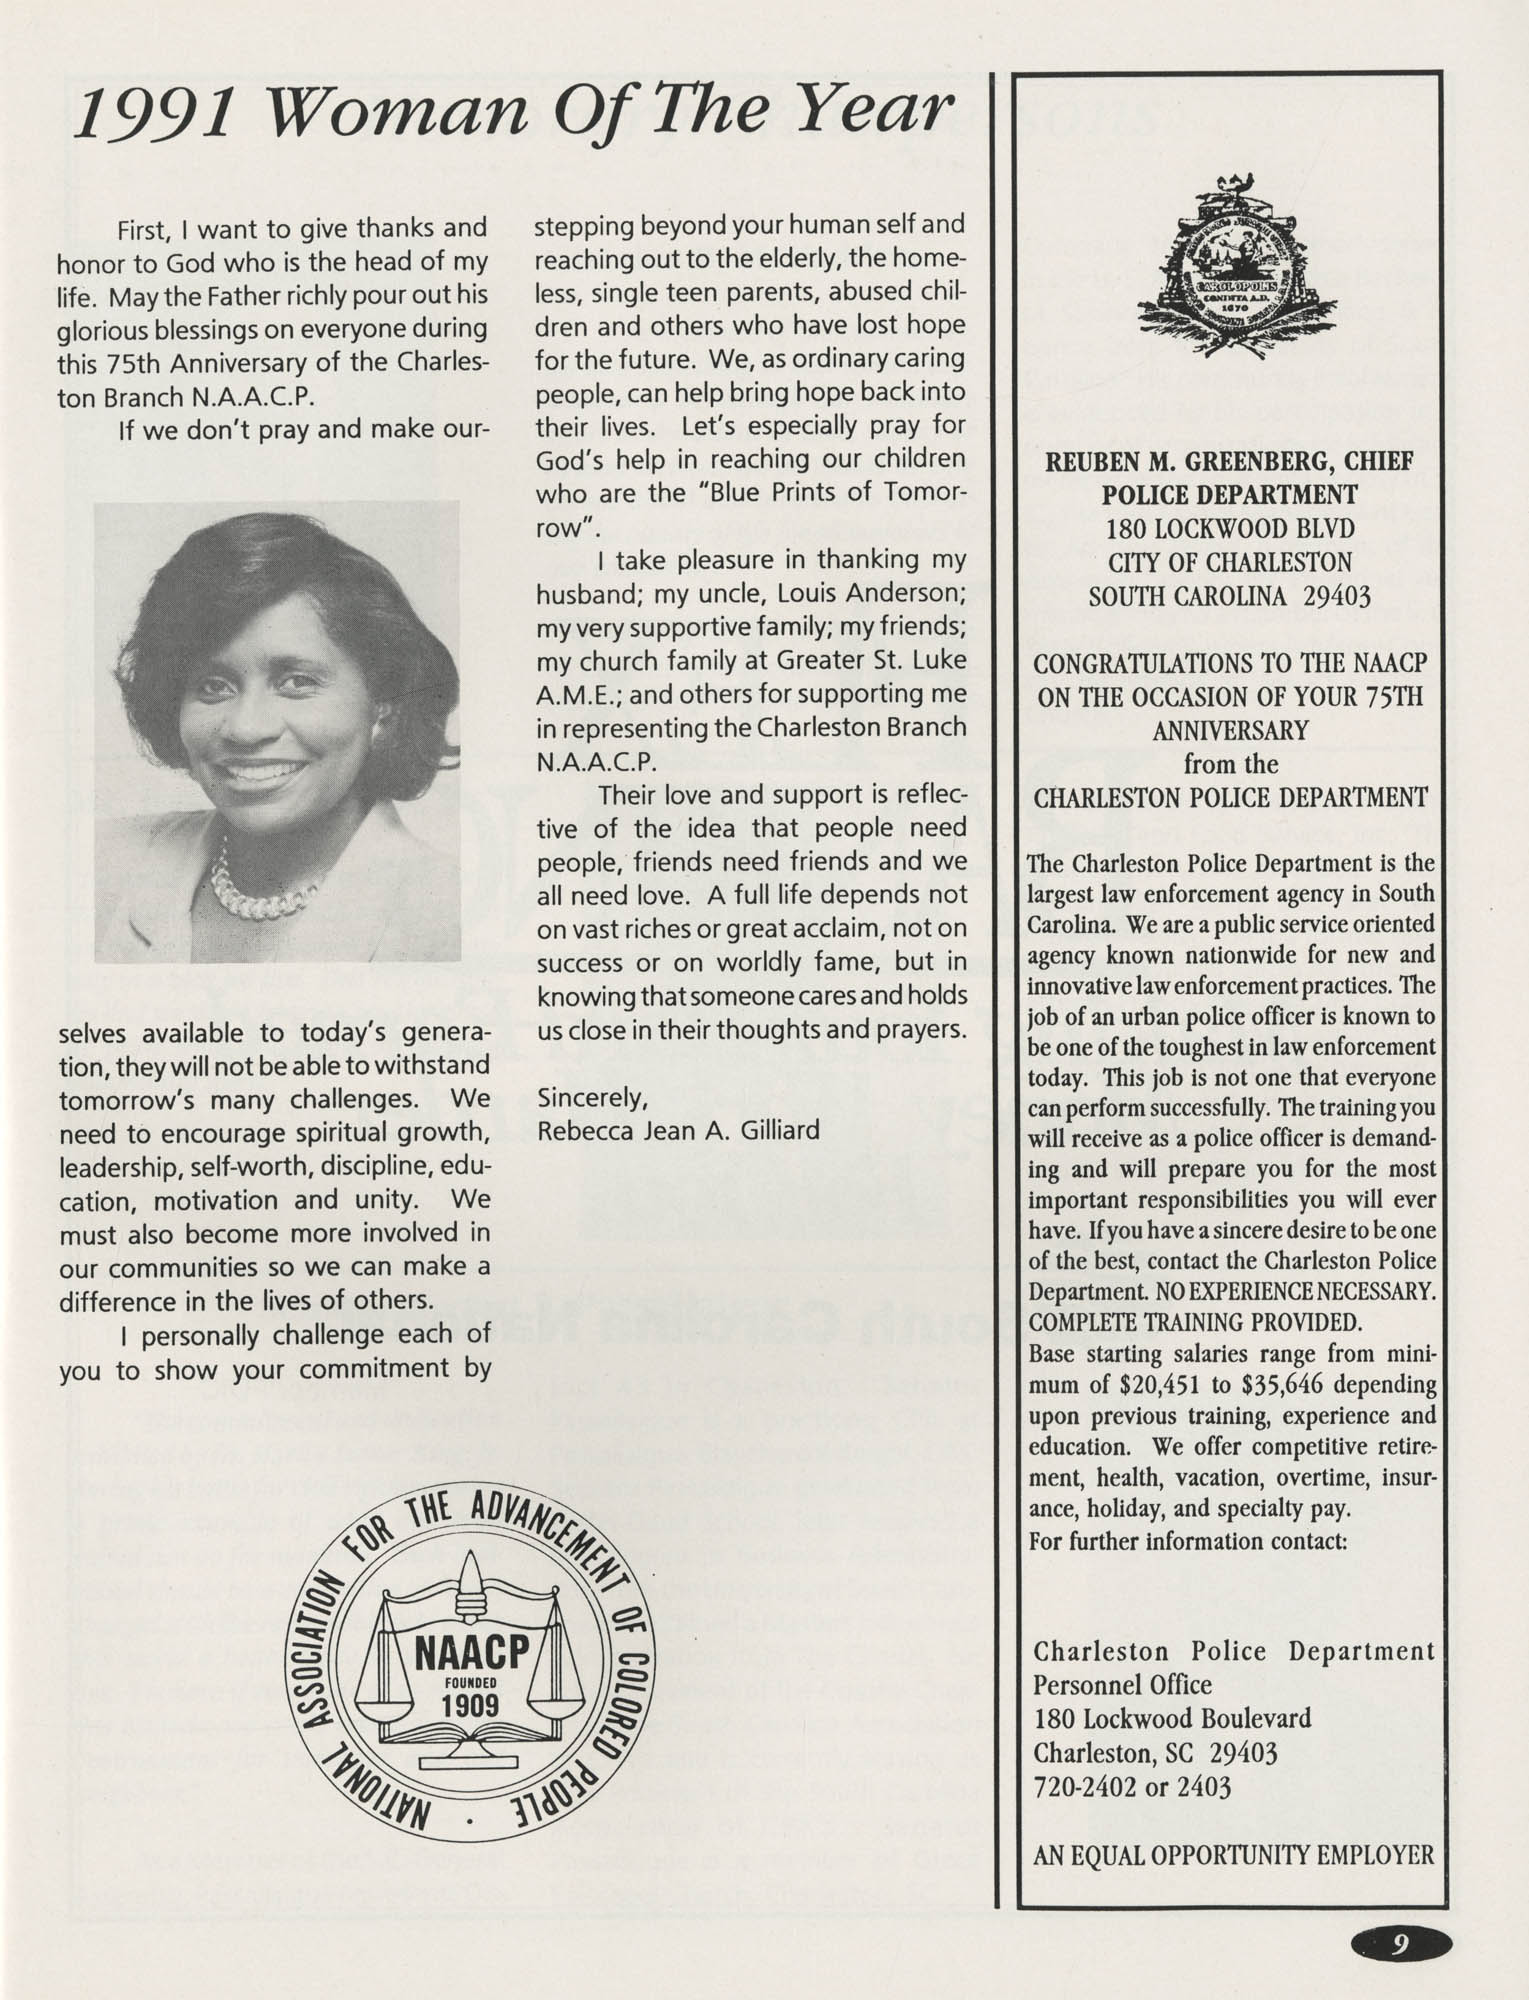 1991 Freedom Fund Magazine, Charleston Branch of the NAACP, Page 9